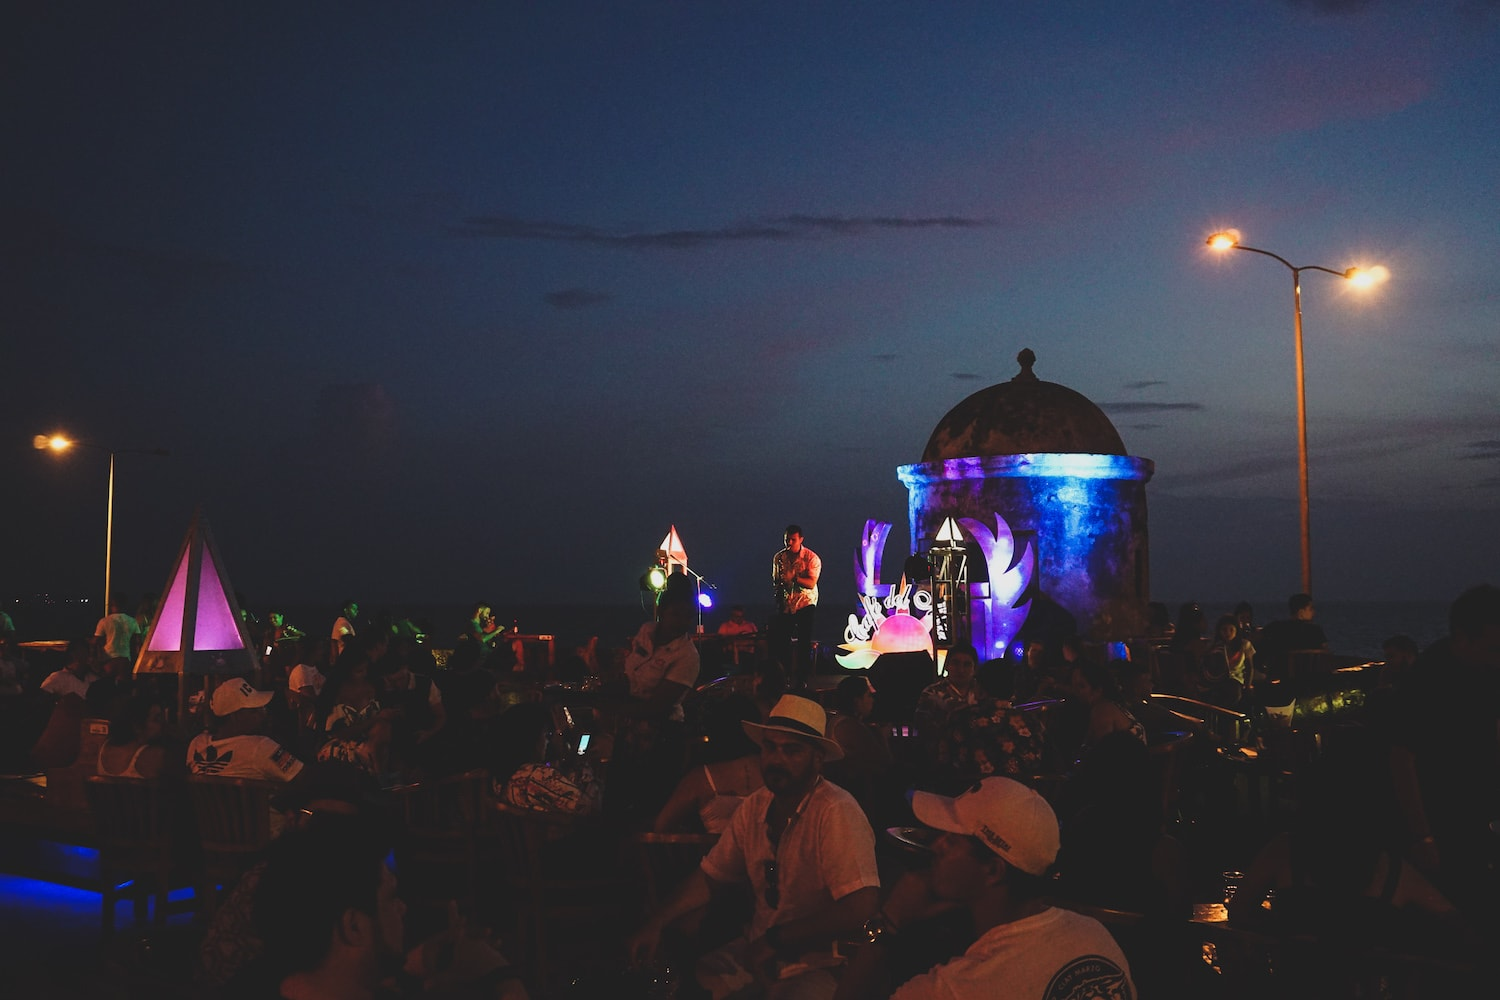 sunset and live music at Cafe del Mar | Things to do in Cartagena, Colombia